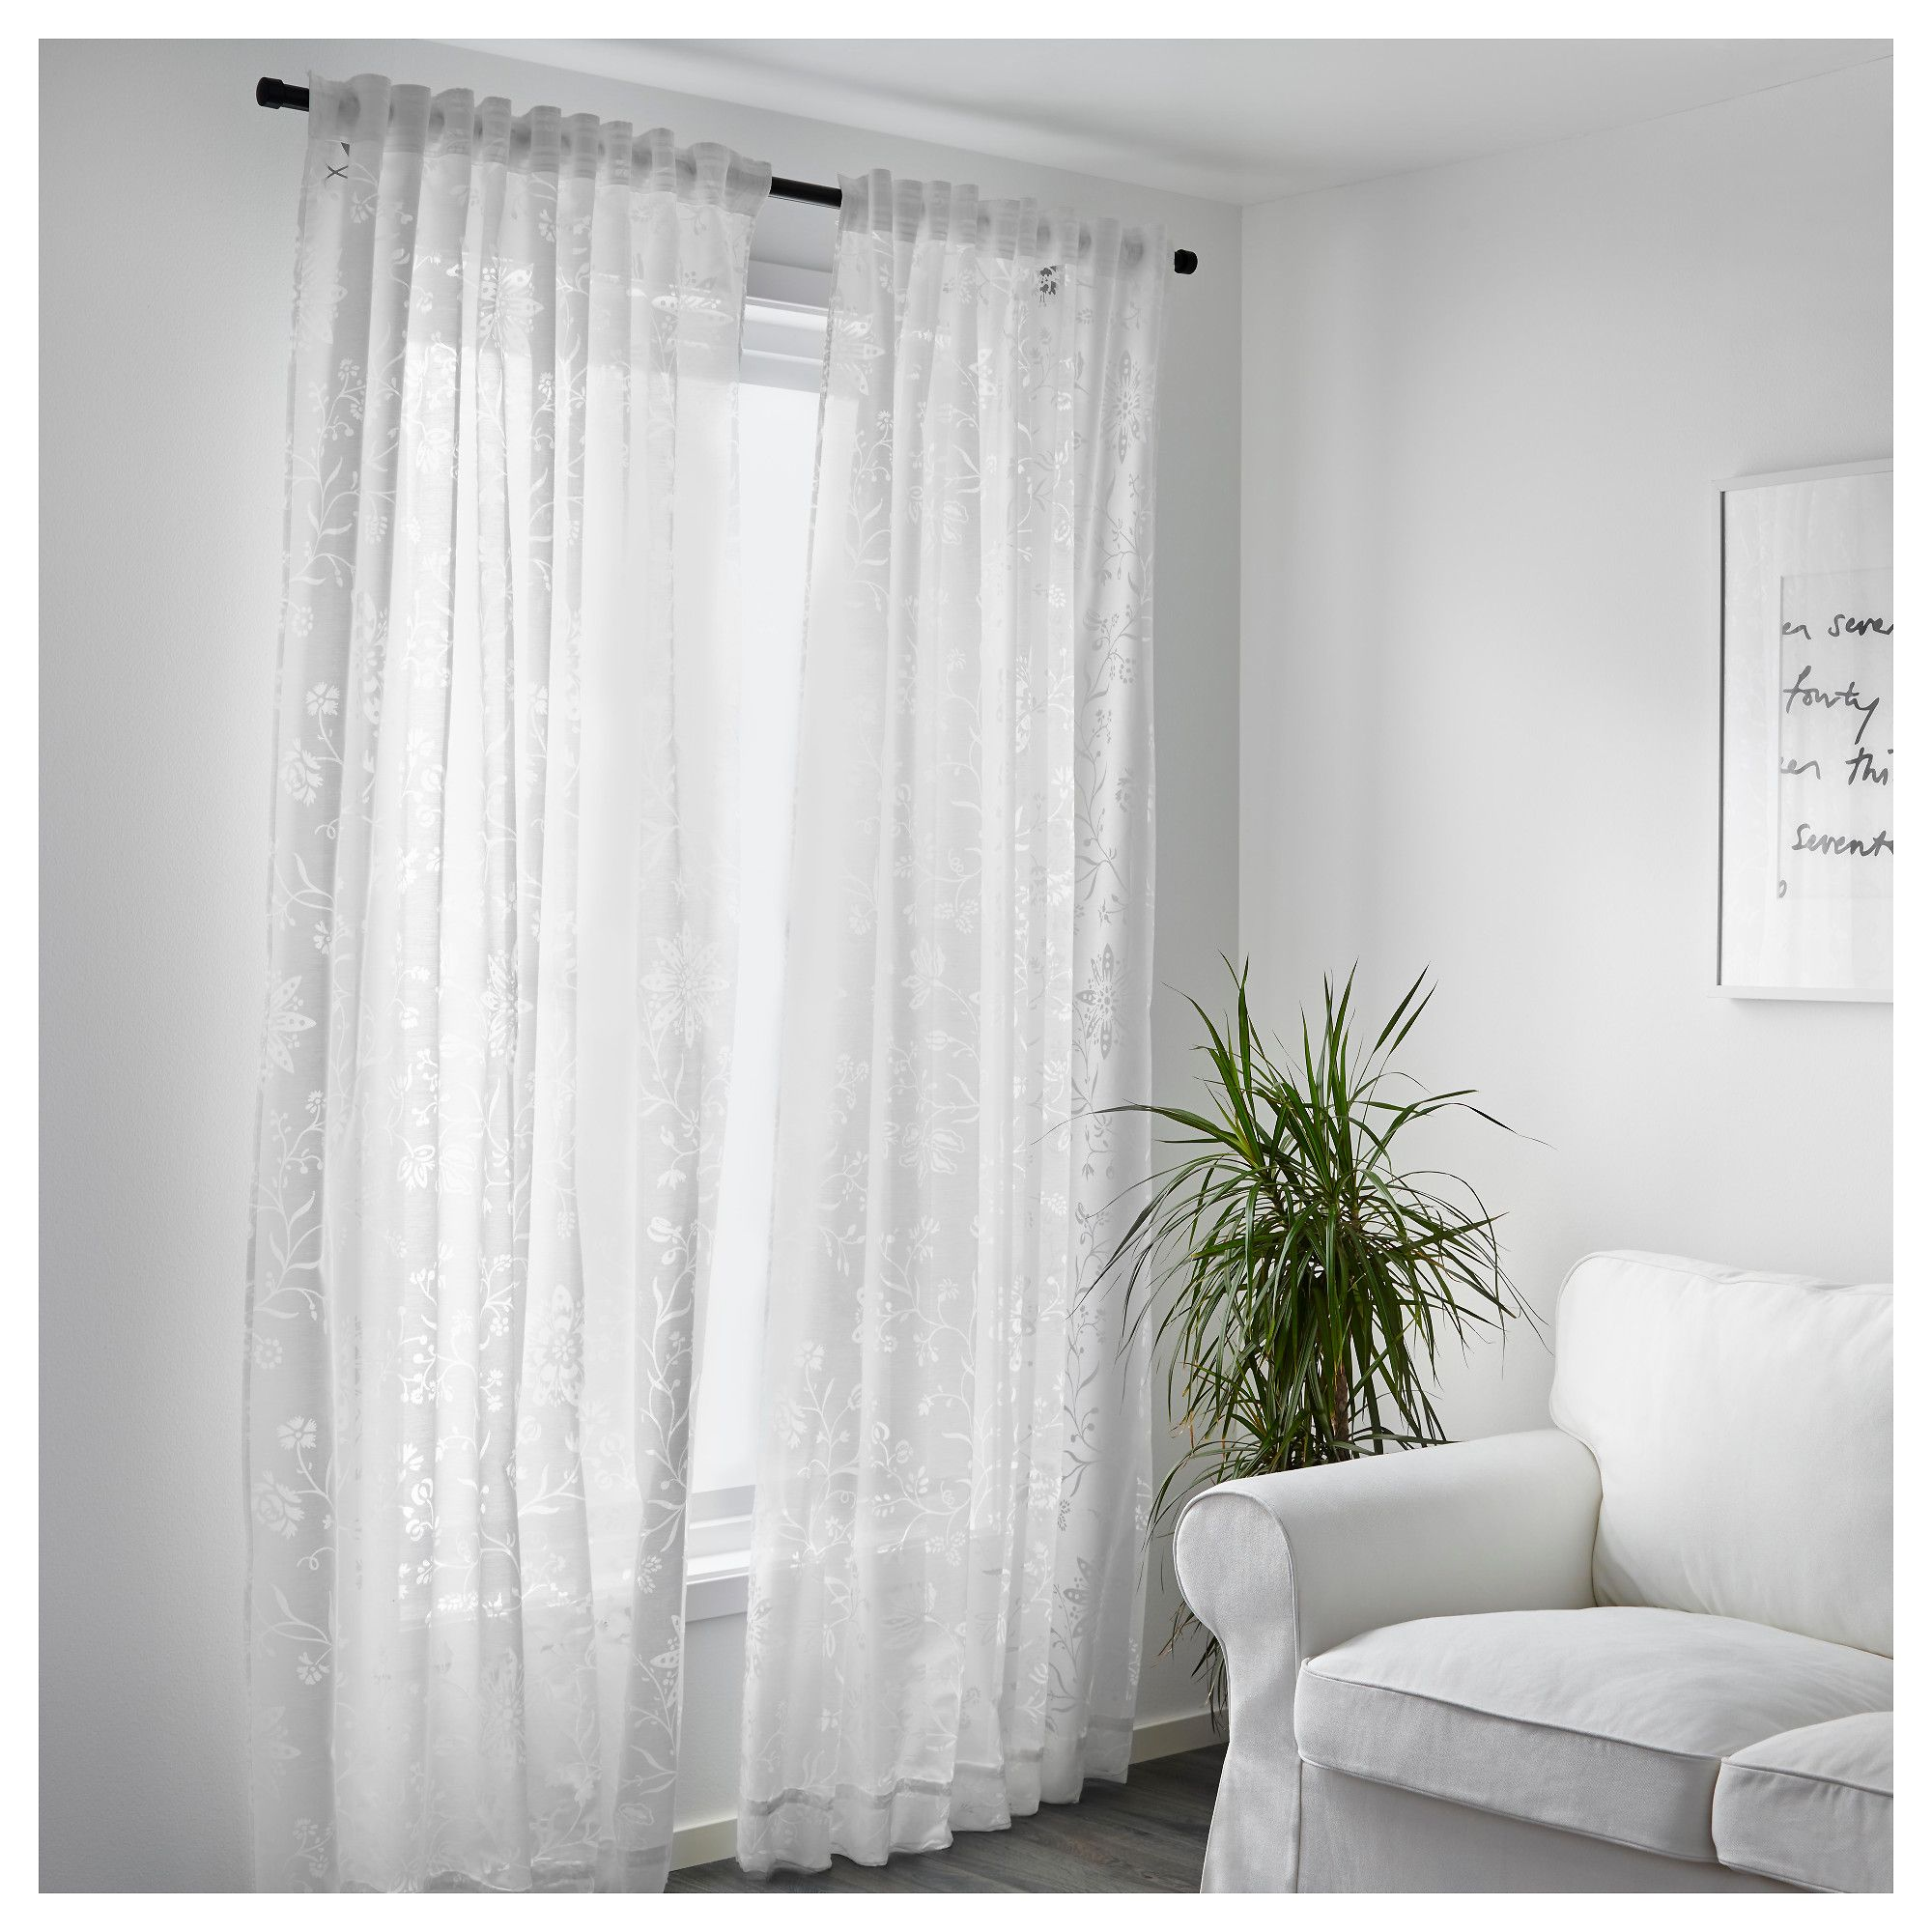 Furniture And Home Furnishings Curtains With Blinds Curtains